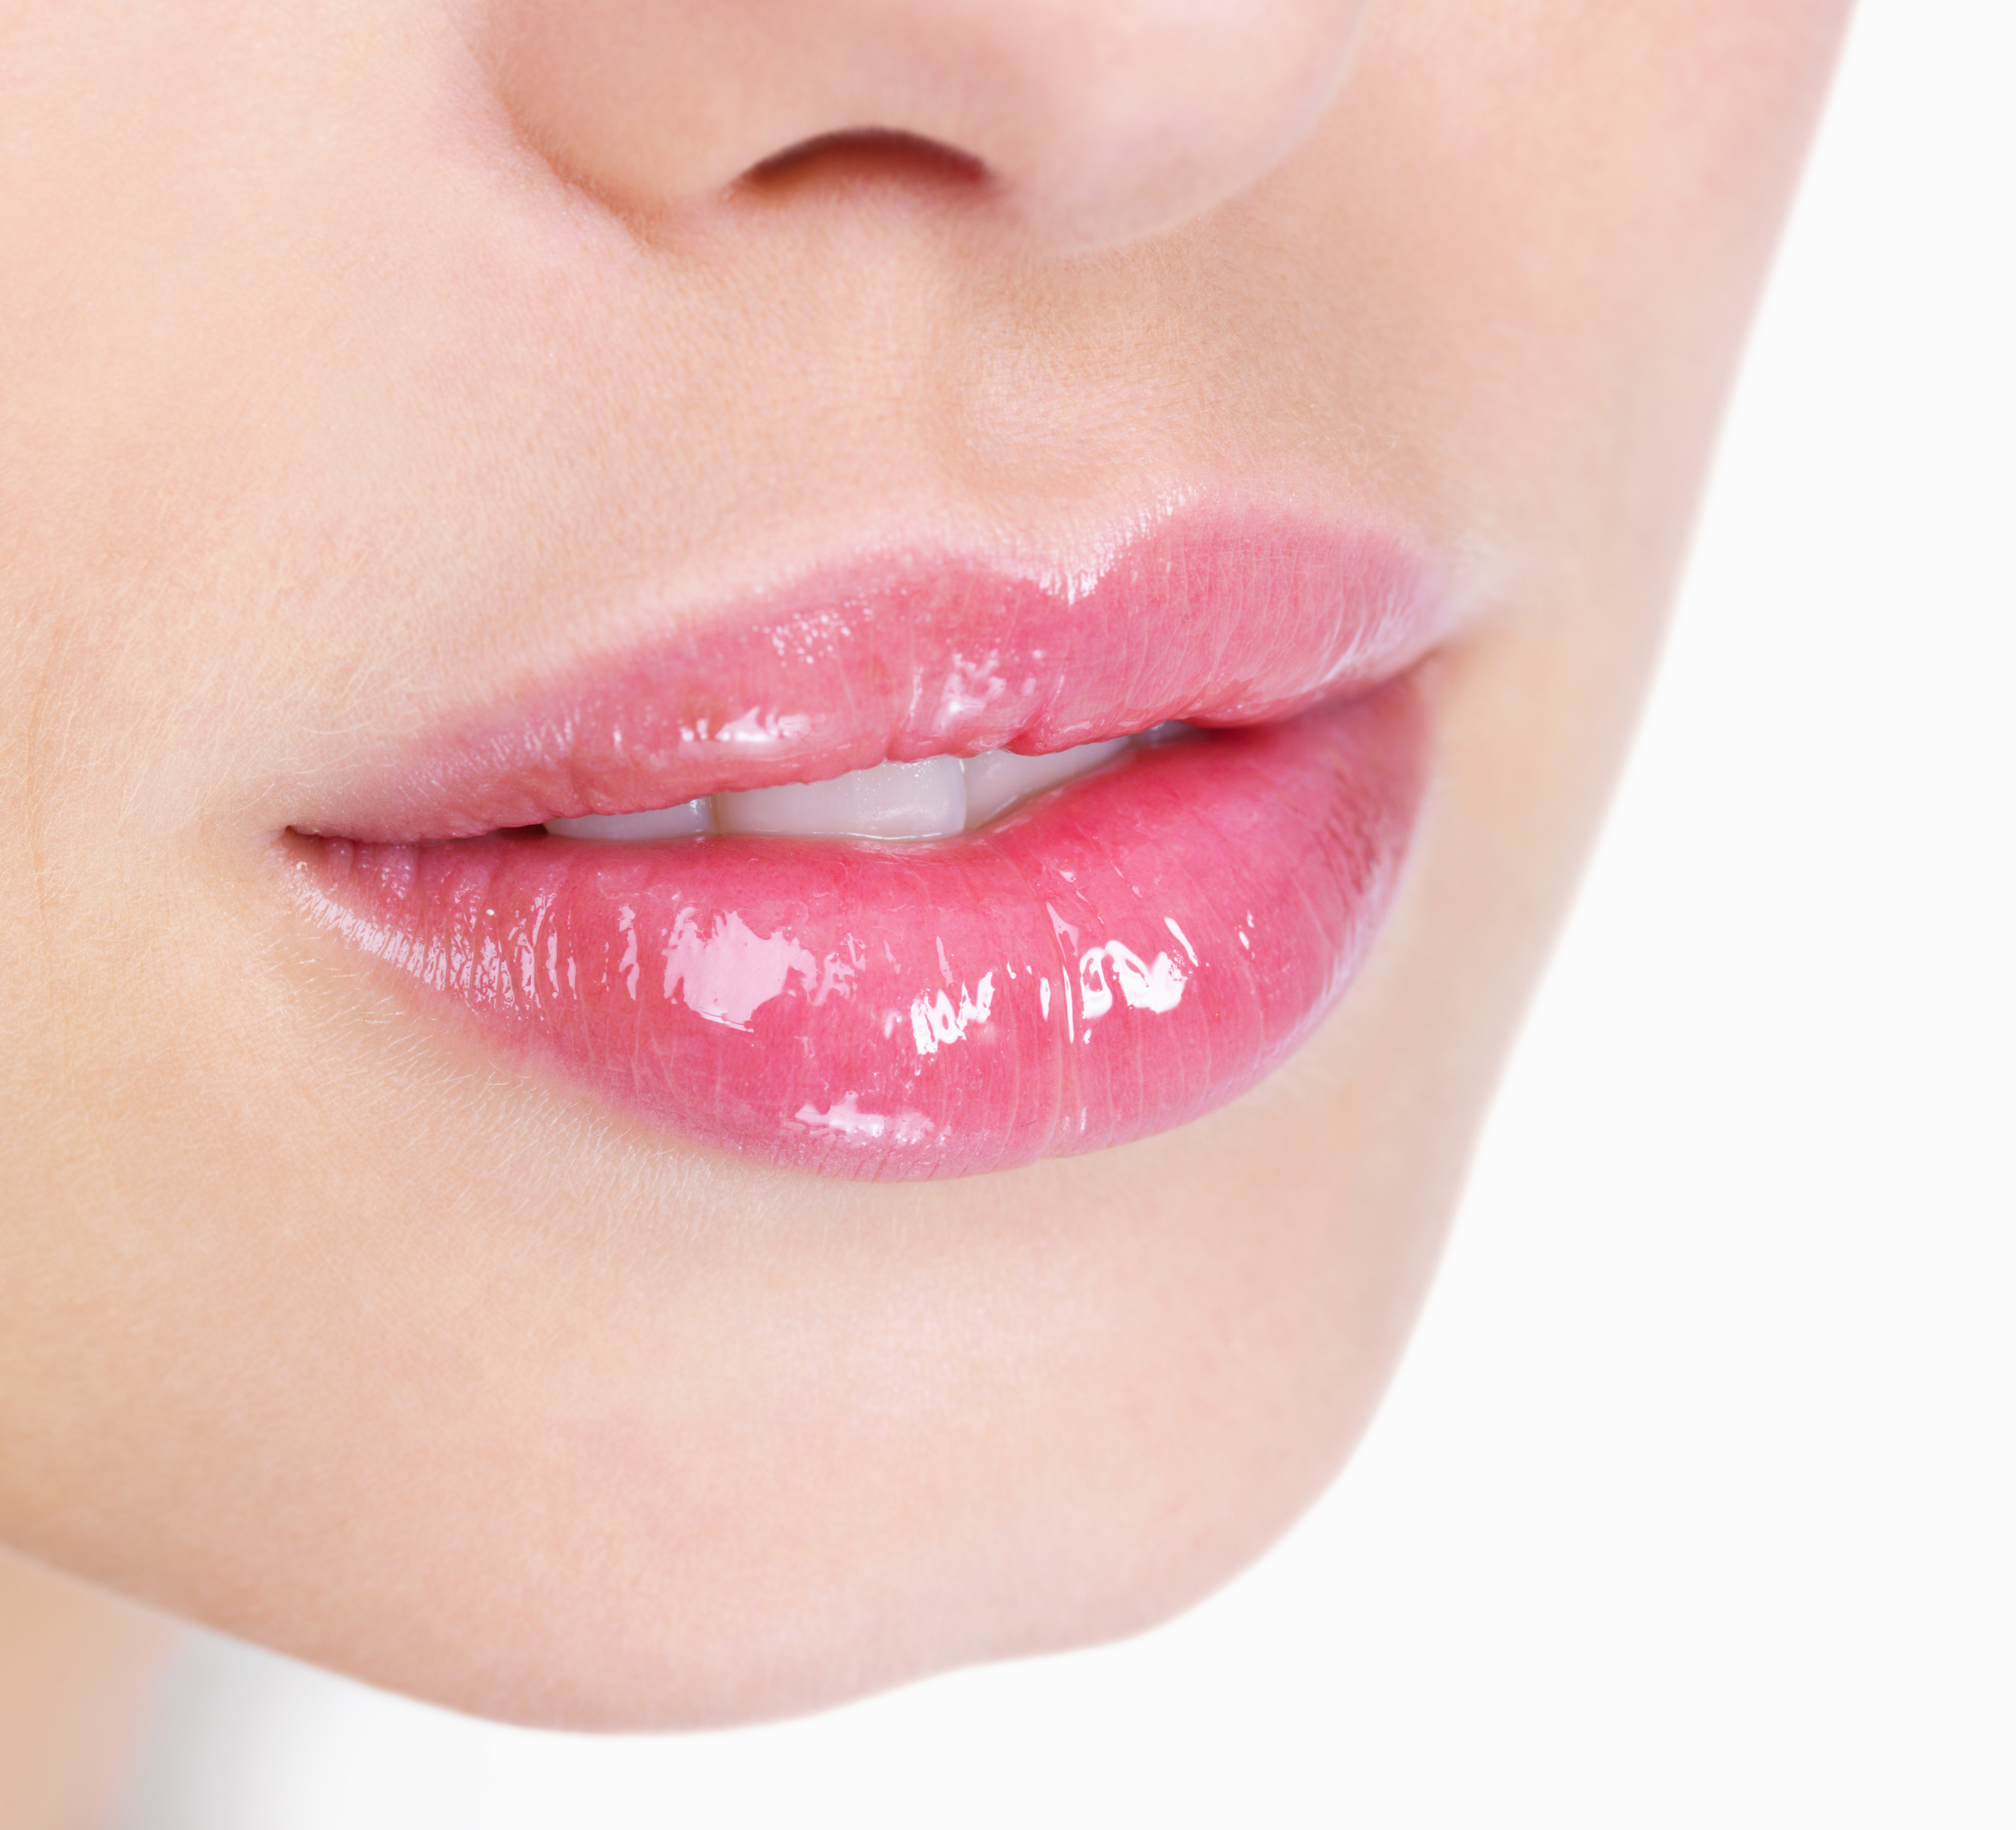 The Truth About Lip Balms: How To Make An Educated Choice